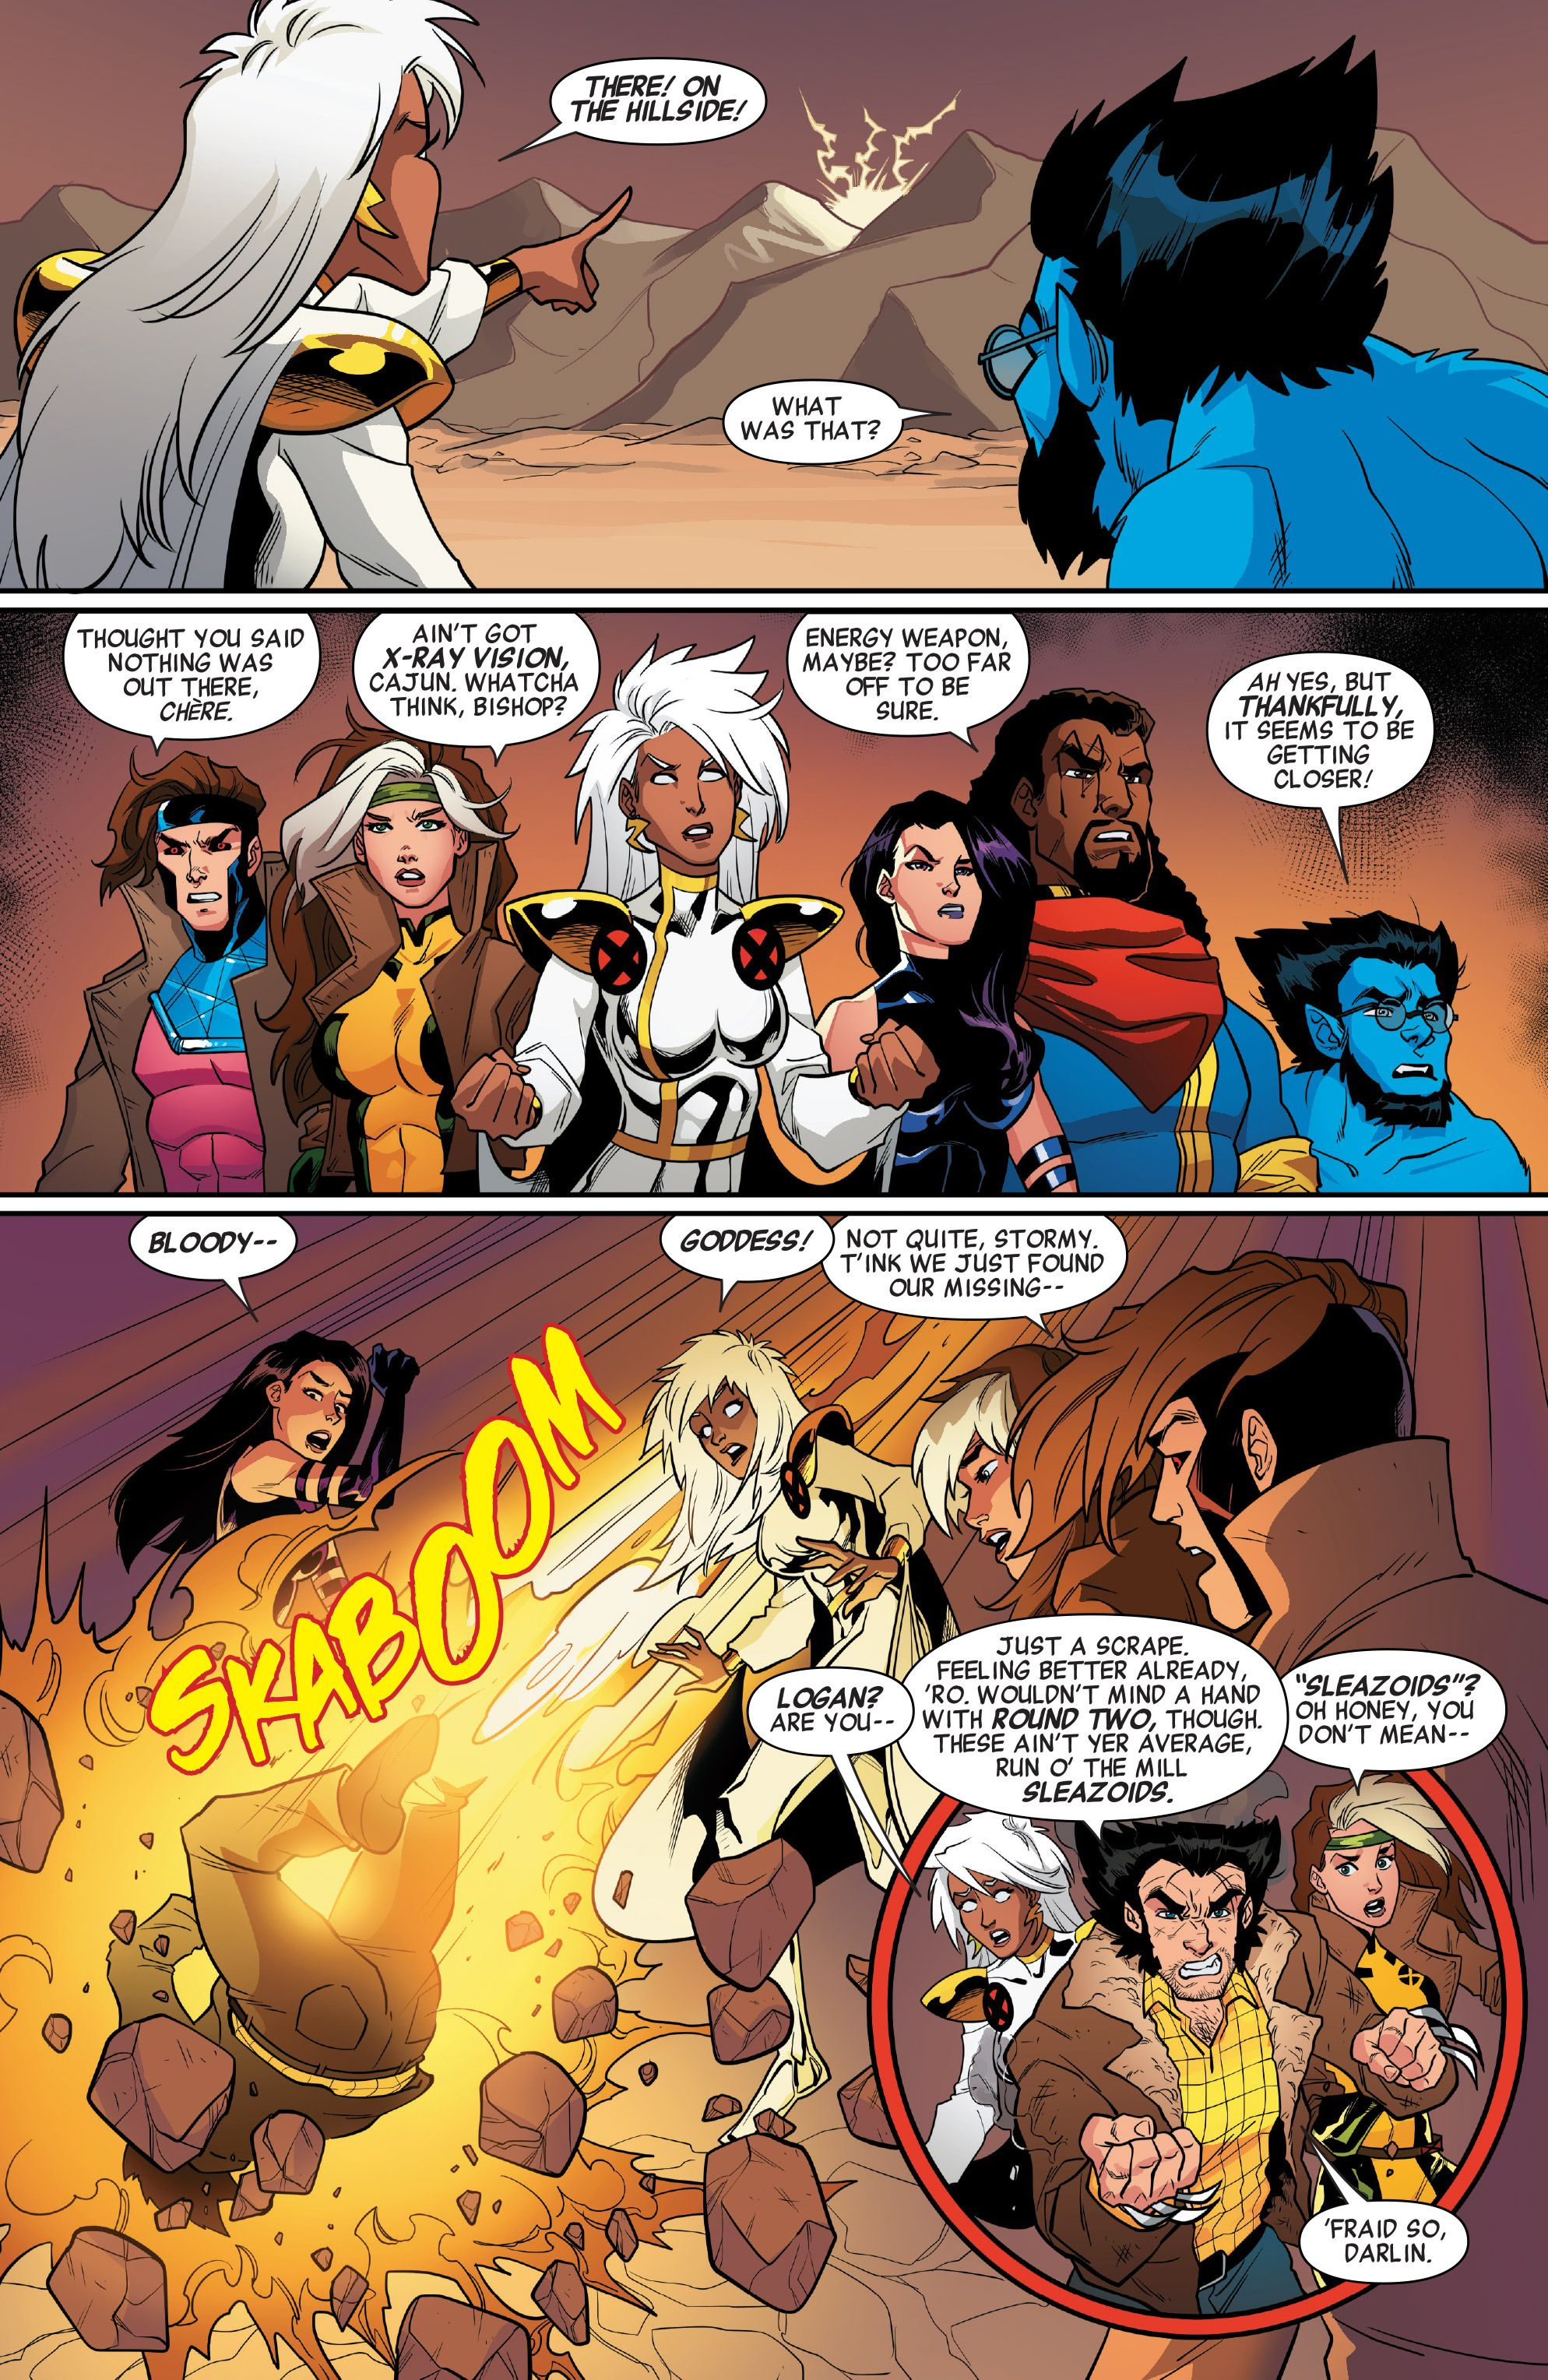 X Men 92 2016 Issue 7 Read X Men 92 2016 Issue 7 Comic Online In High Quality Comics Comics Online X Men